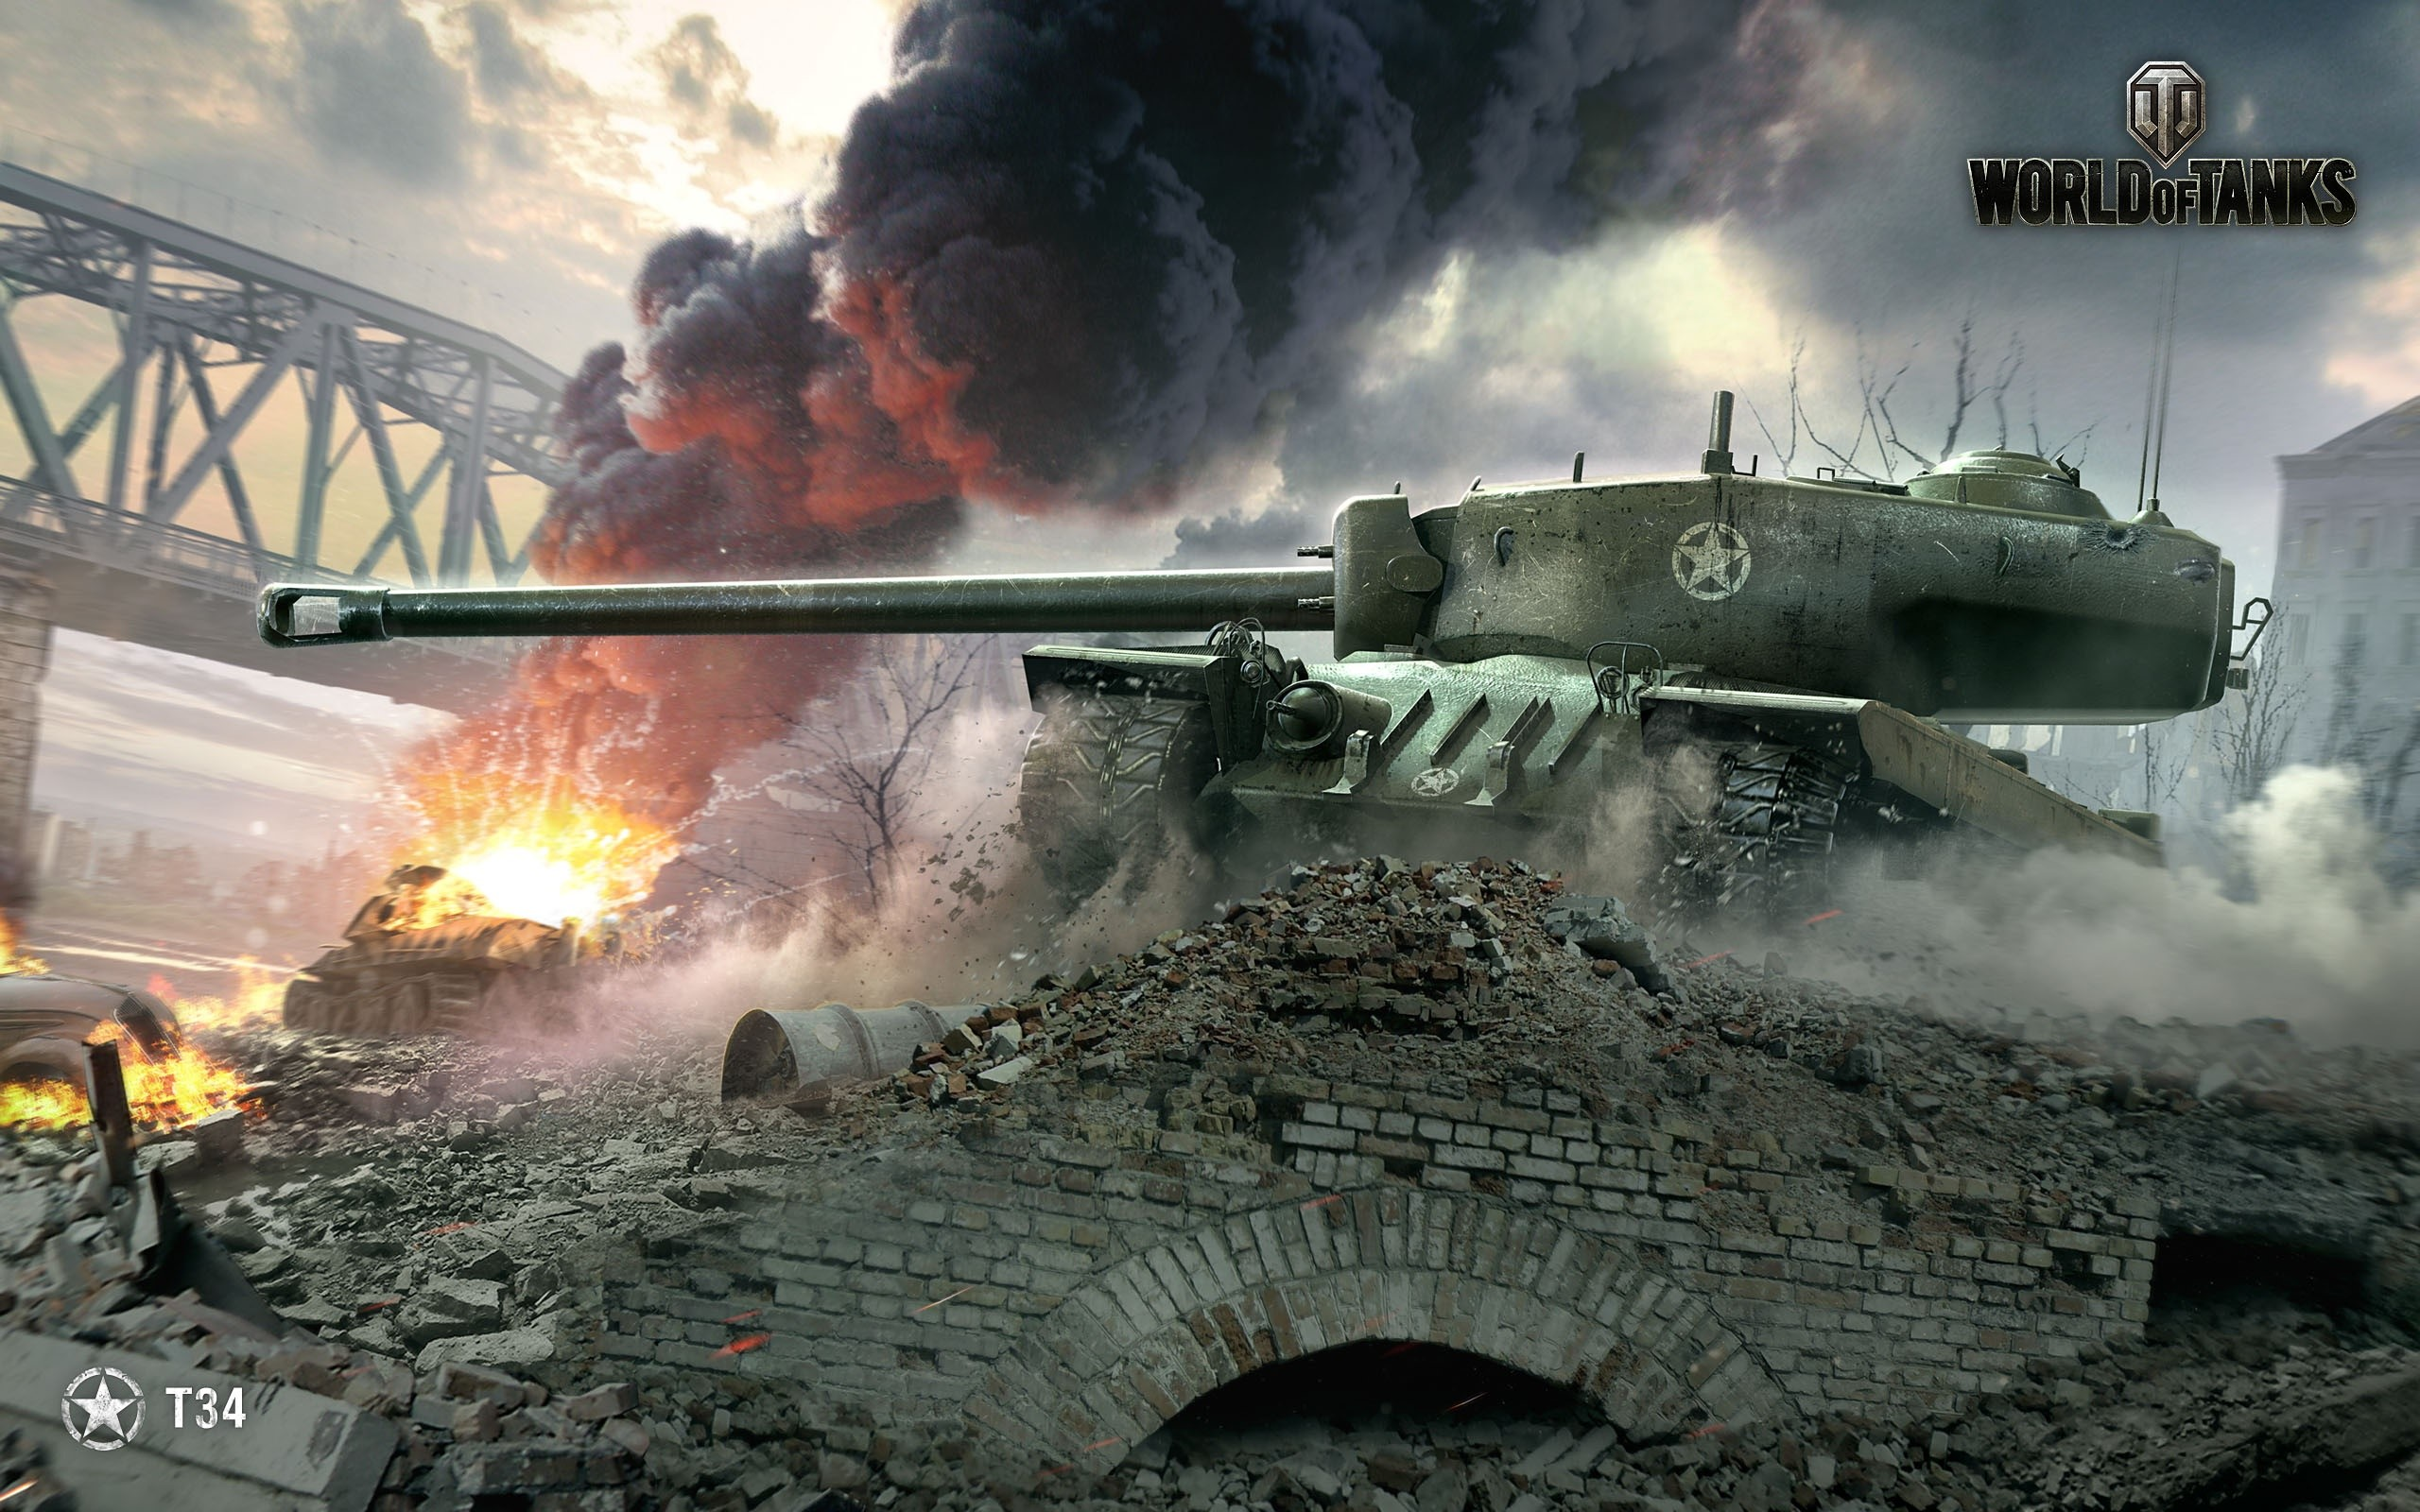 Fondos de pantalla T34 World of tanks